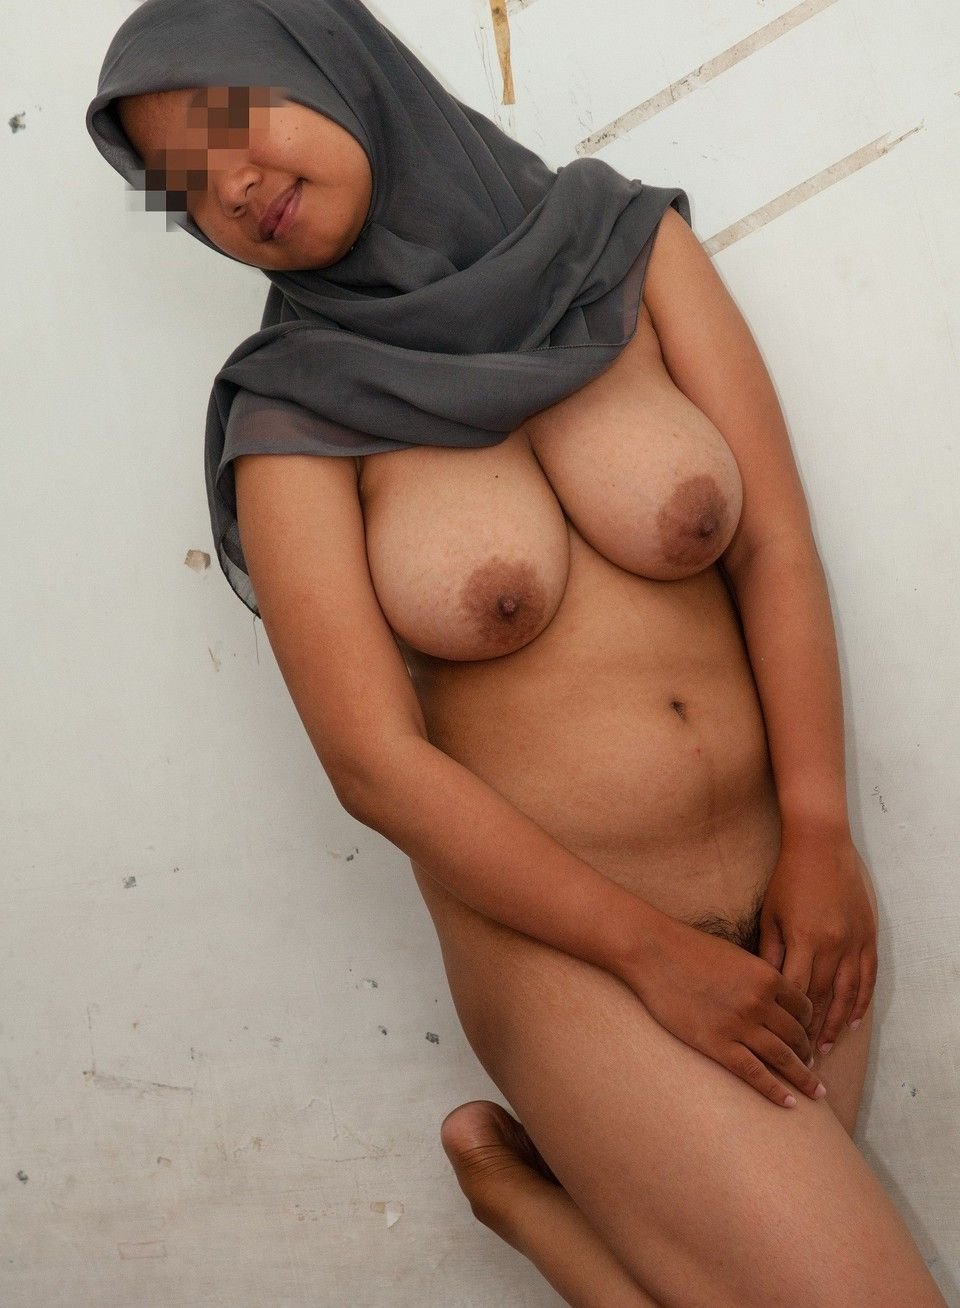 muslimnakedgirl-shows